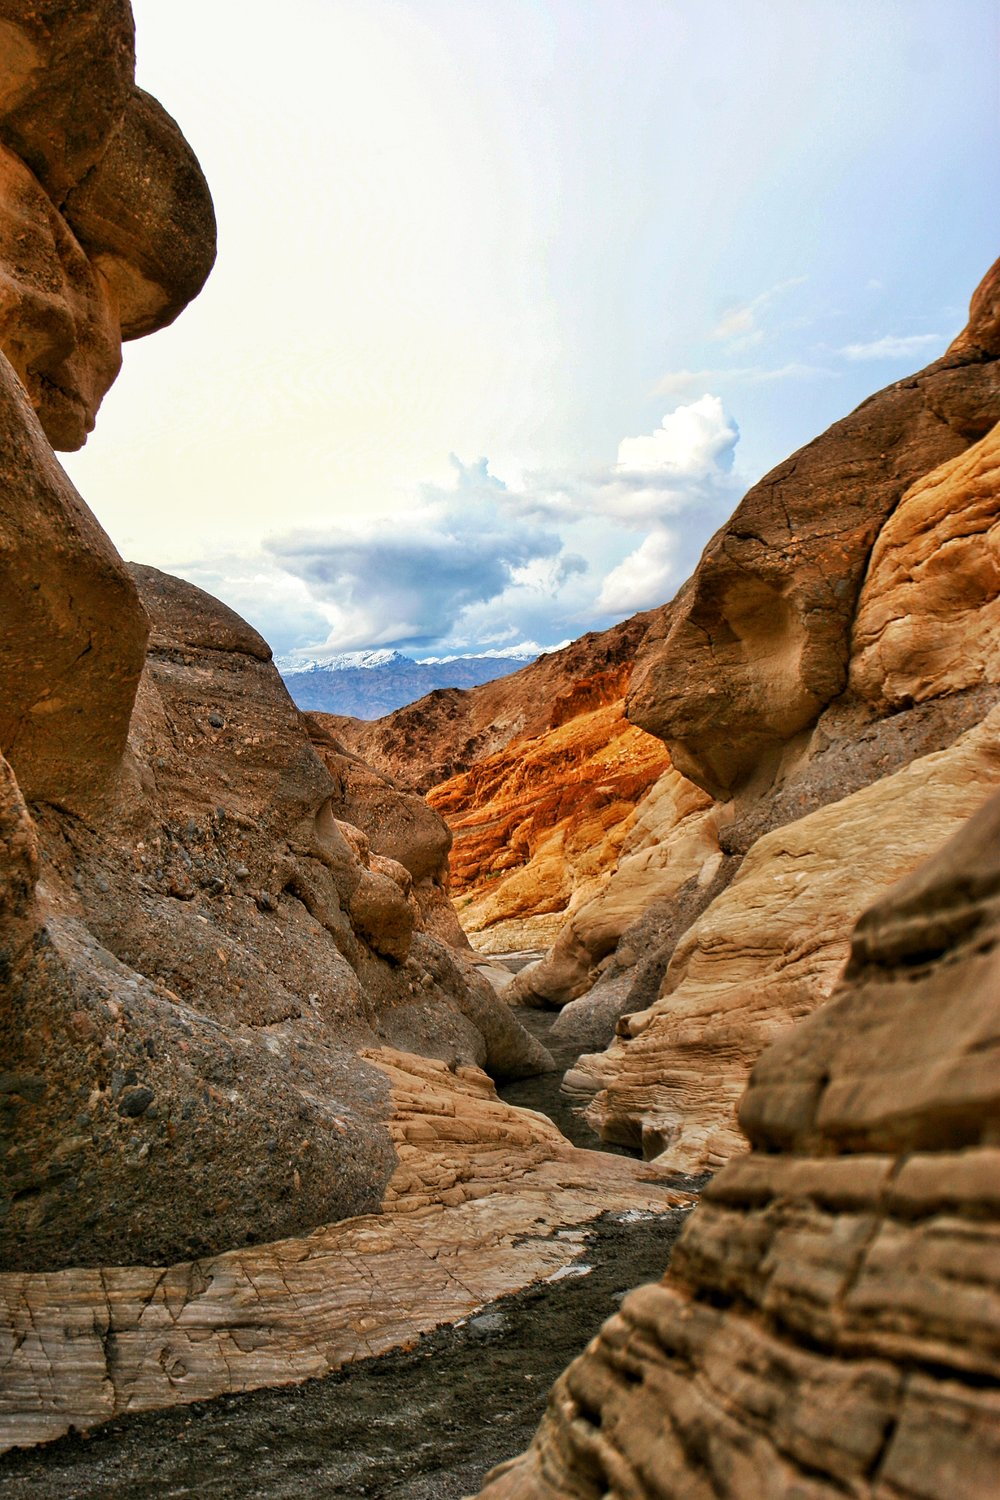 Mosaic Canyon is a stunning slot canyon located outside of Stovepipe Wells